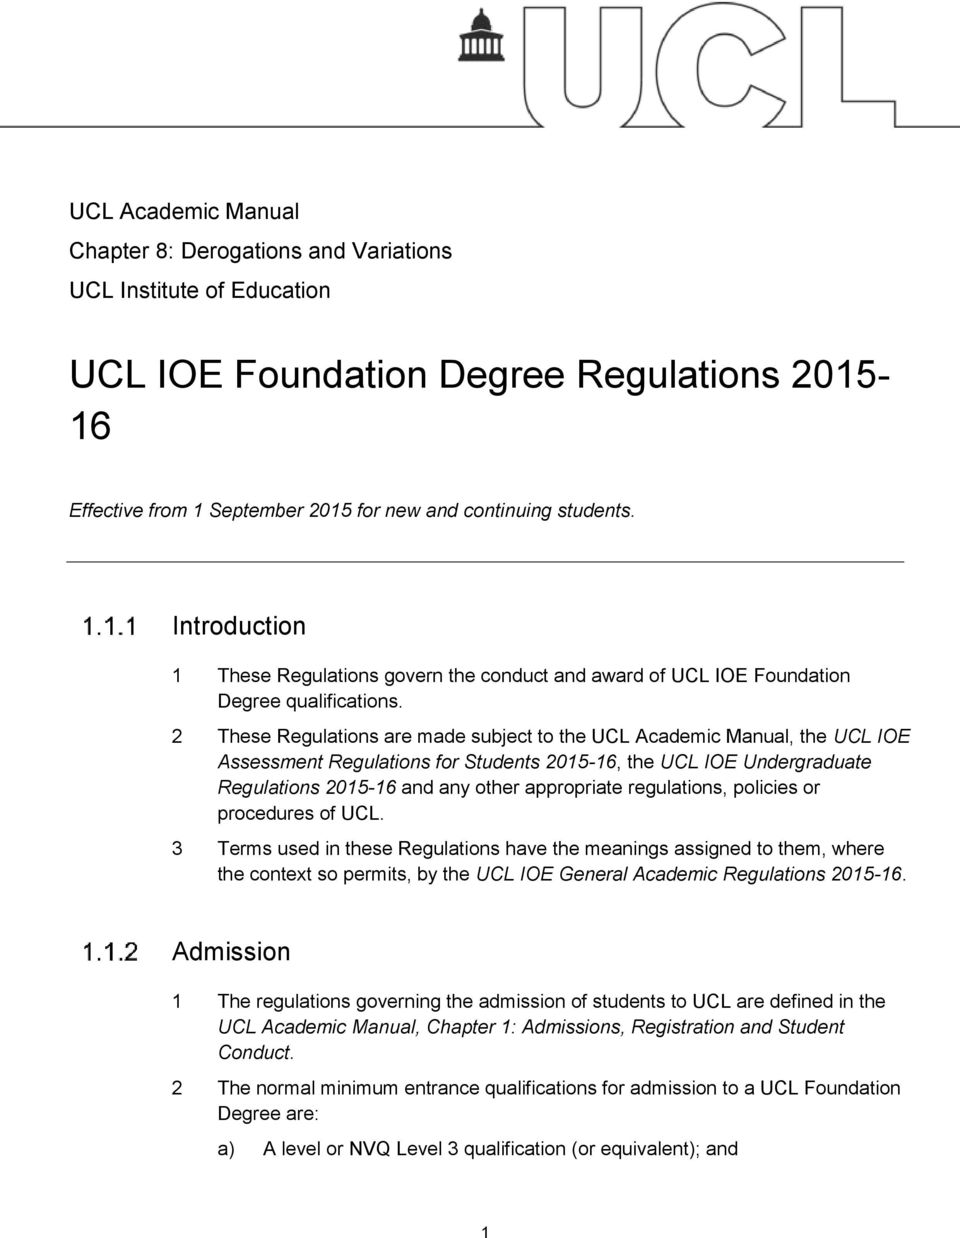 2 These Regulations are made subject to the UCL Academic Manual, the UCL IOE Assessment Regulations for Students 2015-16, the UCL IOE Undergraduate Regulations 2015-16 and any other appropriate